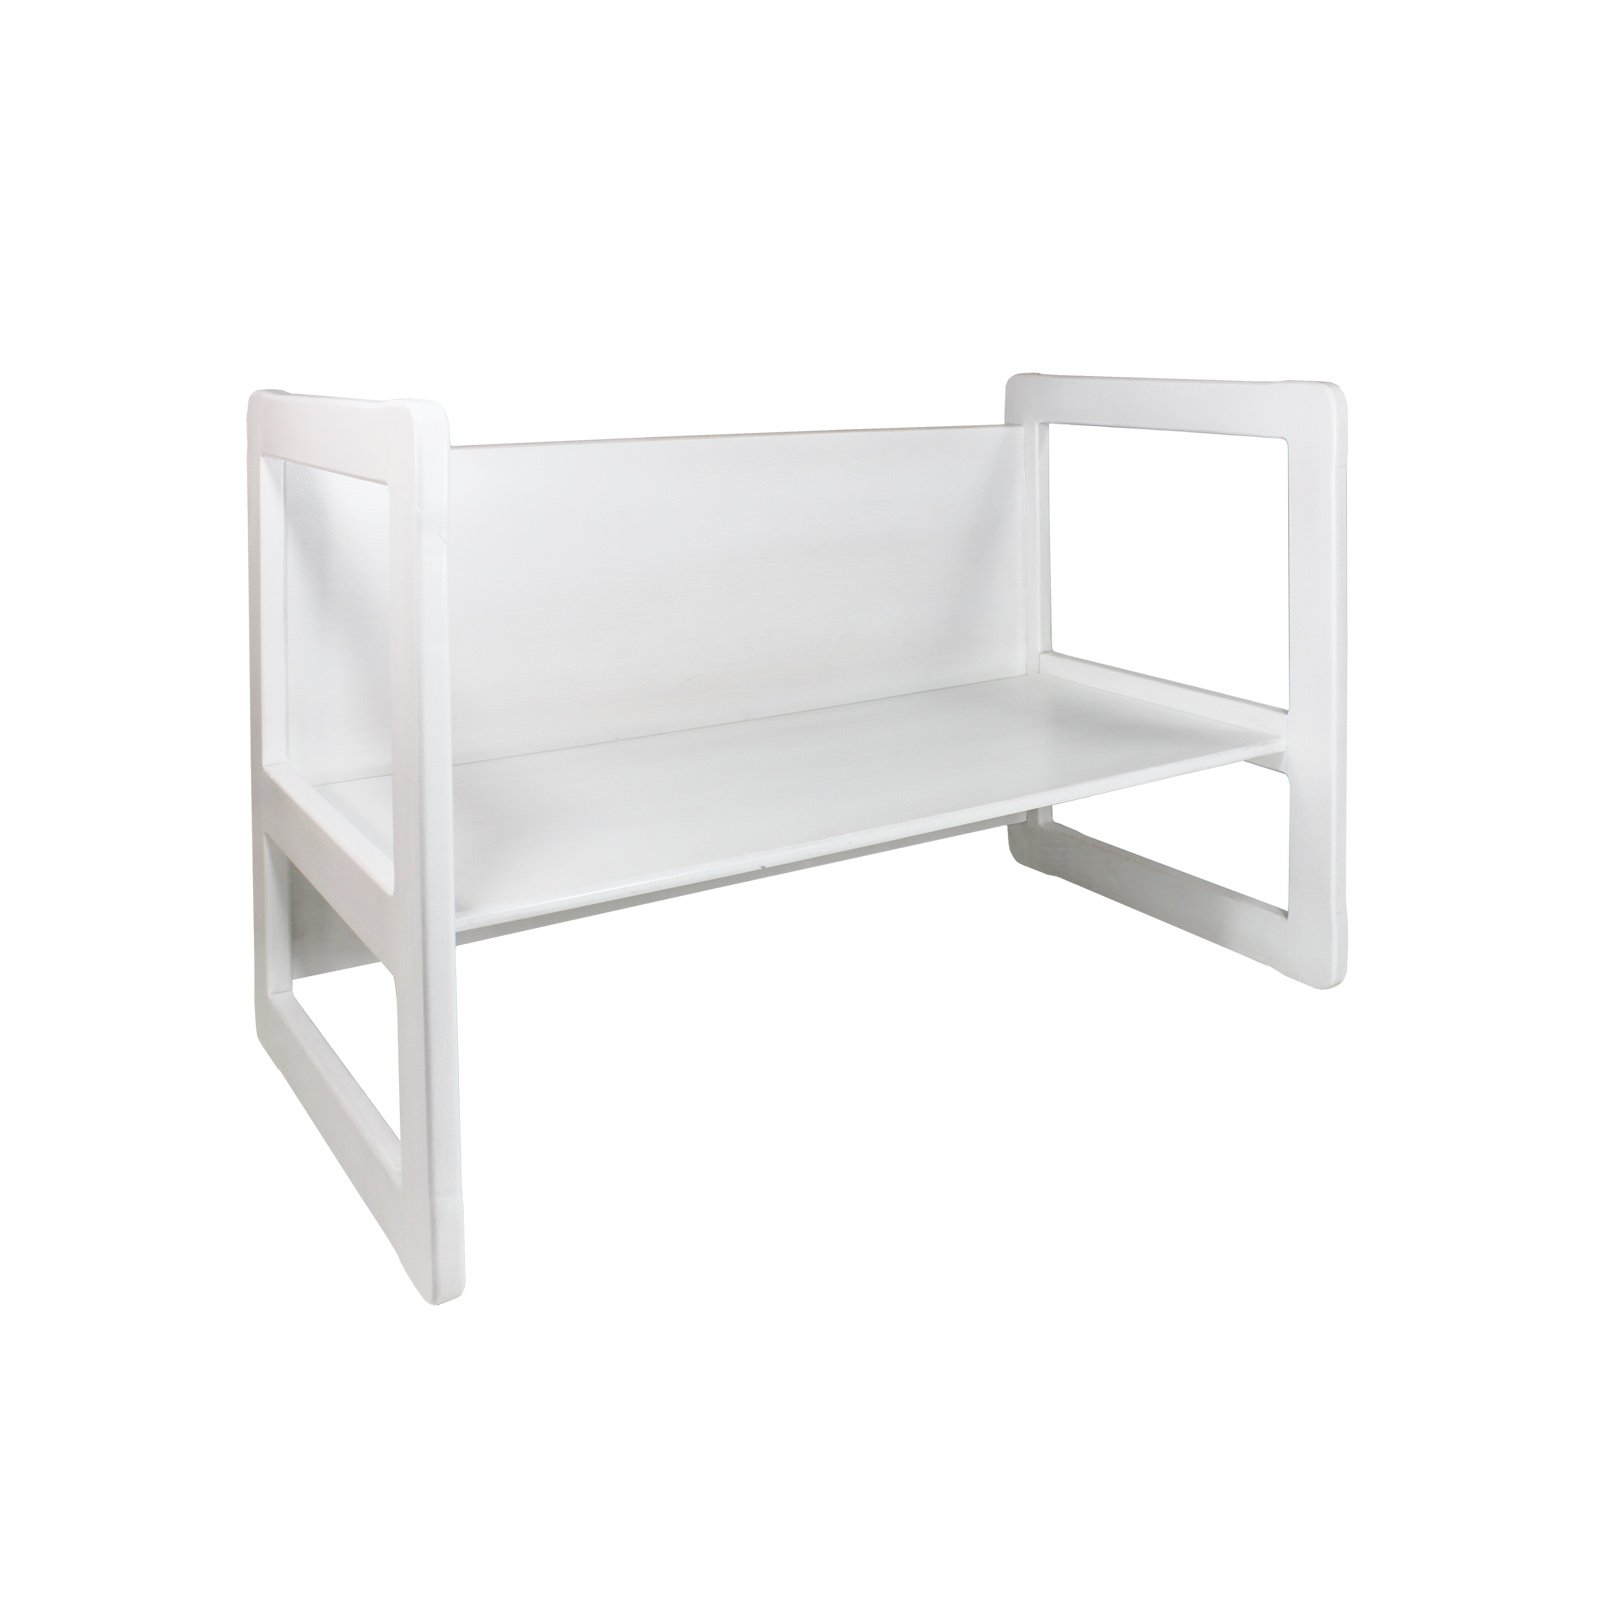 3 in 1 Childrens Multifunctional Furniture Set of 2, One Small Bench or Table and One Large Bench or Table Beech Wood, White Stained by Obique Ltd (Image #7)